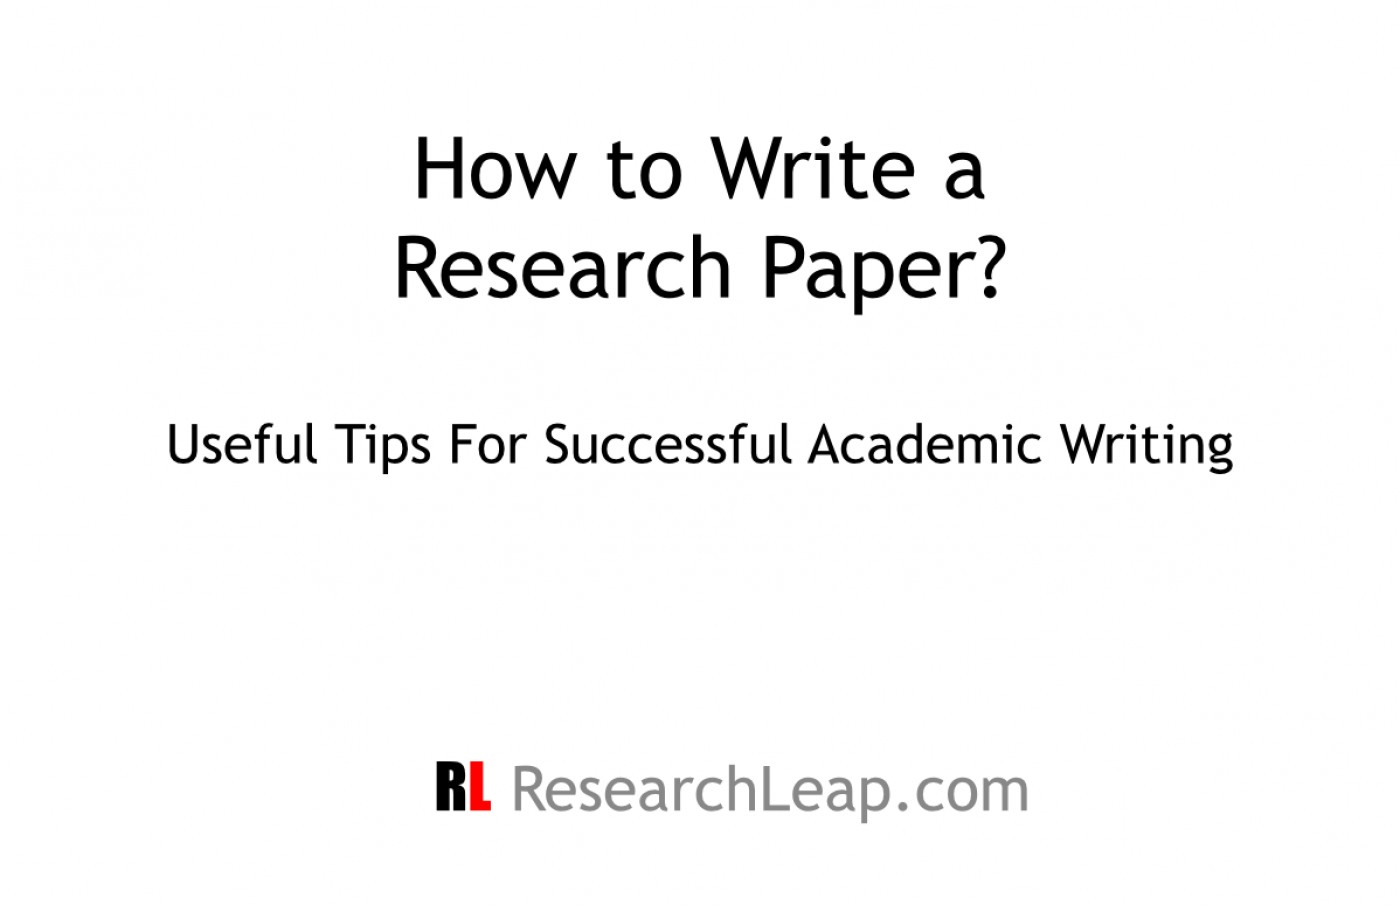 015 Tips For Writing Researchs Ppt Entering Unforgettable Research Papers A Paper Pdf In College 1400